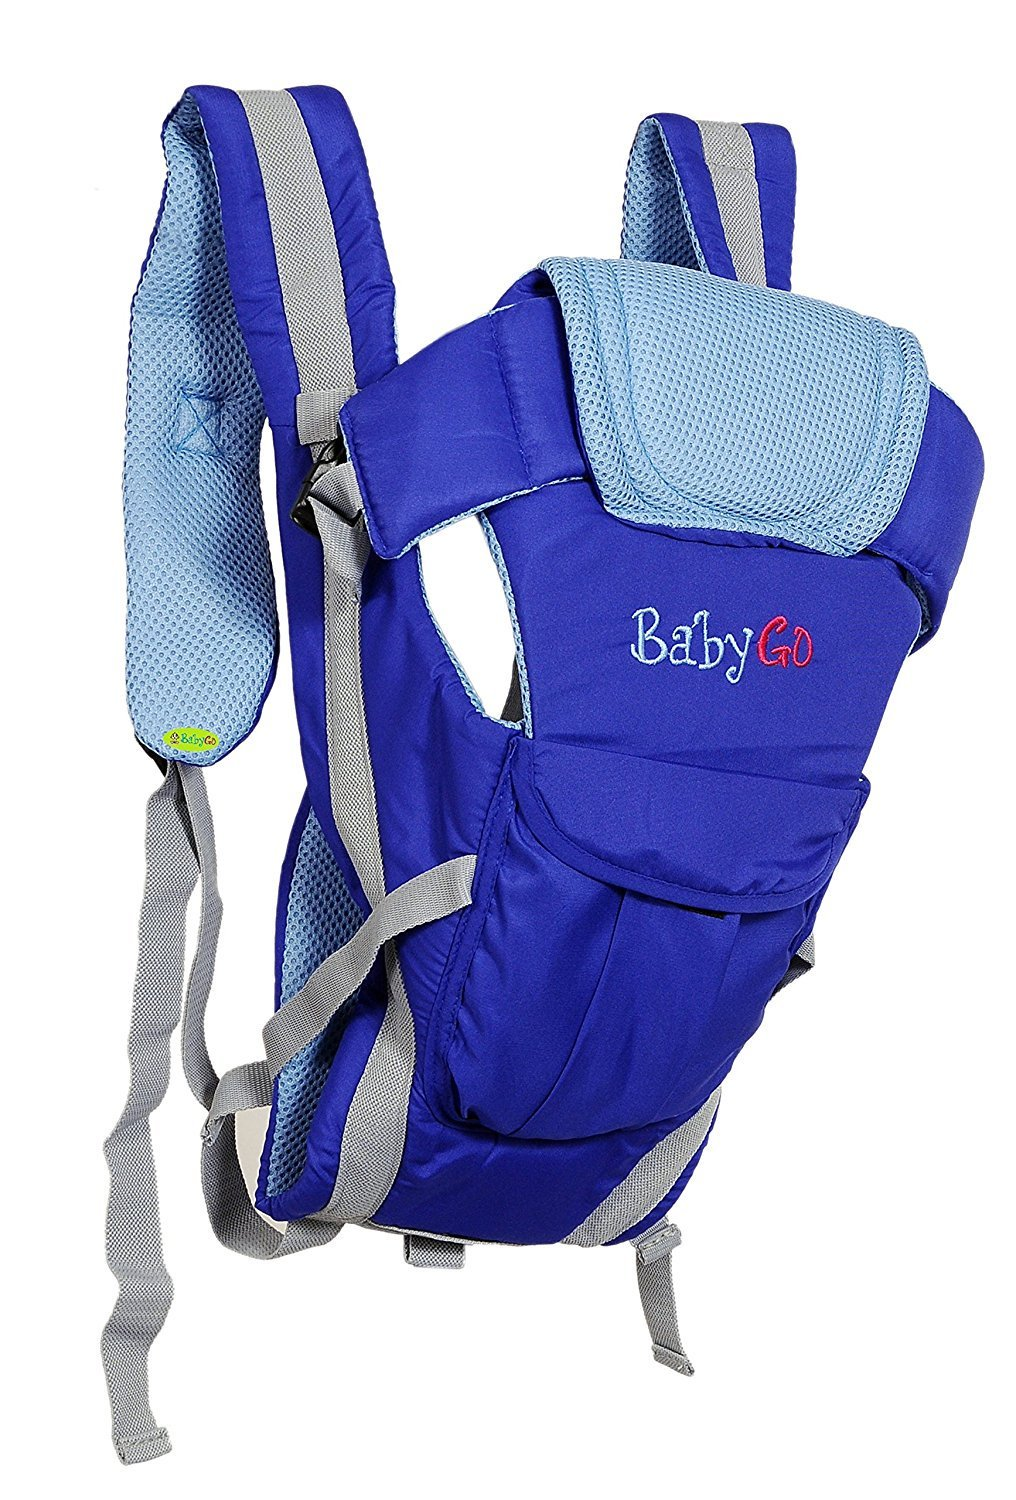 Get BabyGo Soft 4-in-1 Baby Carrier with Comfortable Head Support and Buckle Straps at Rs 425   Amaz